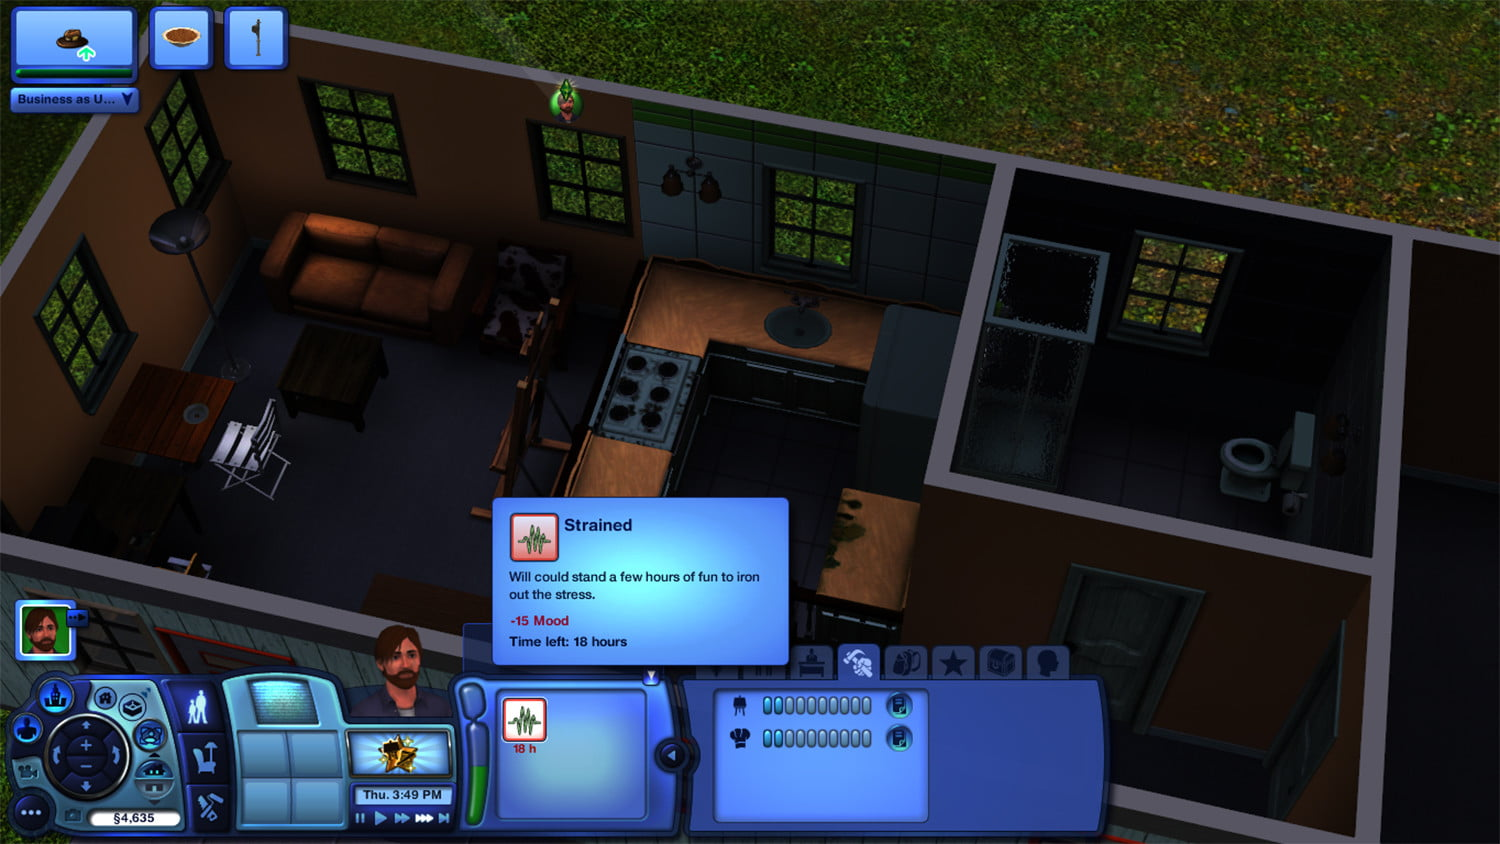 Playing 'The Sims' in the harsh light of adulthood | Digital Trends